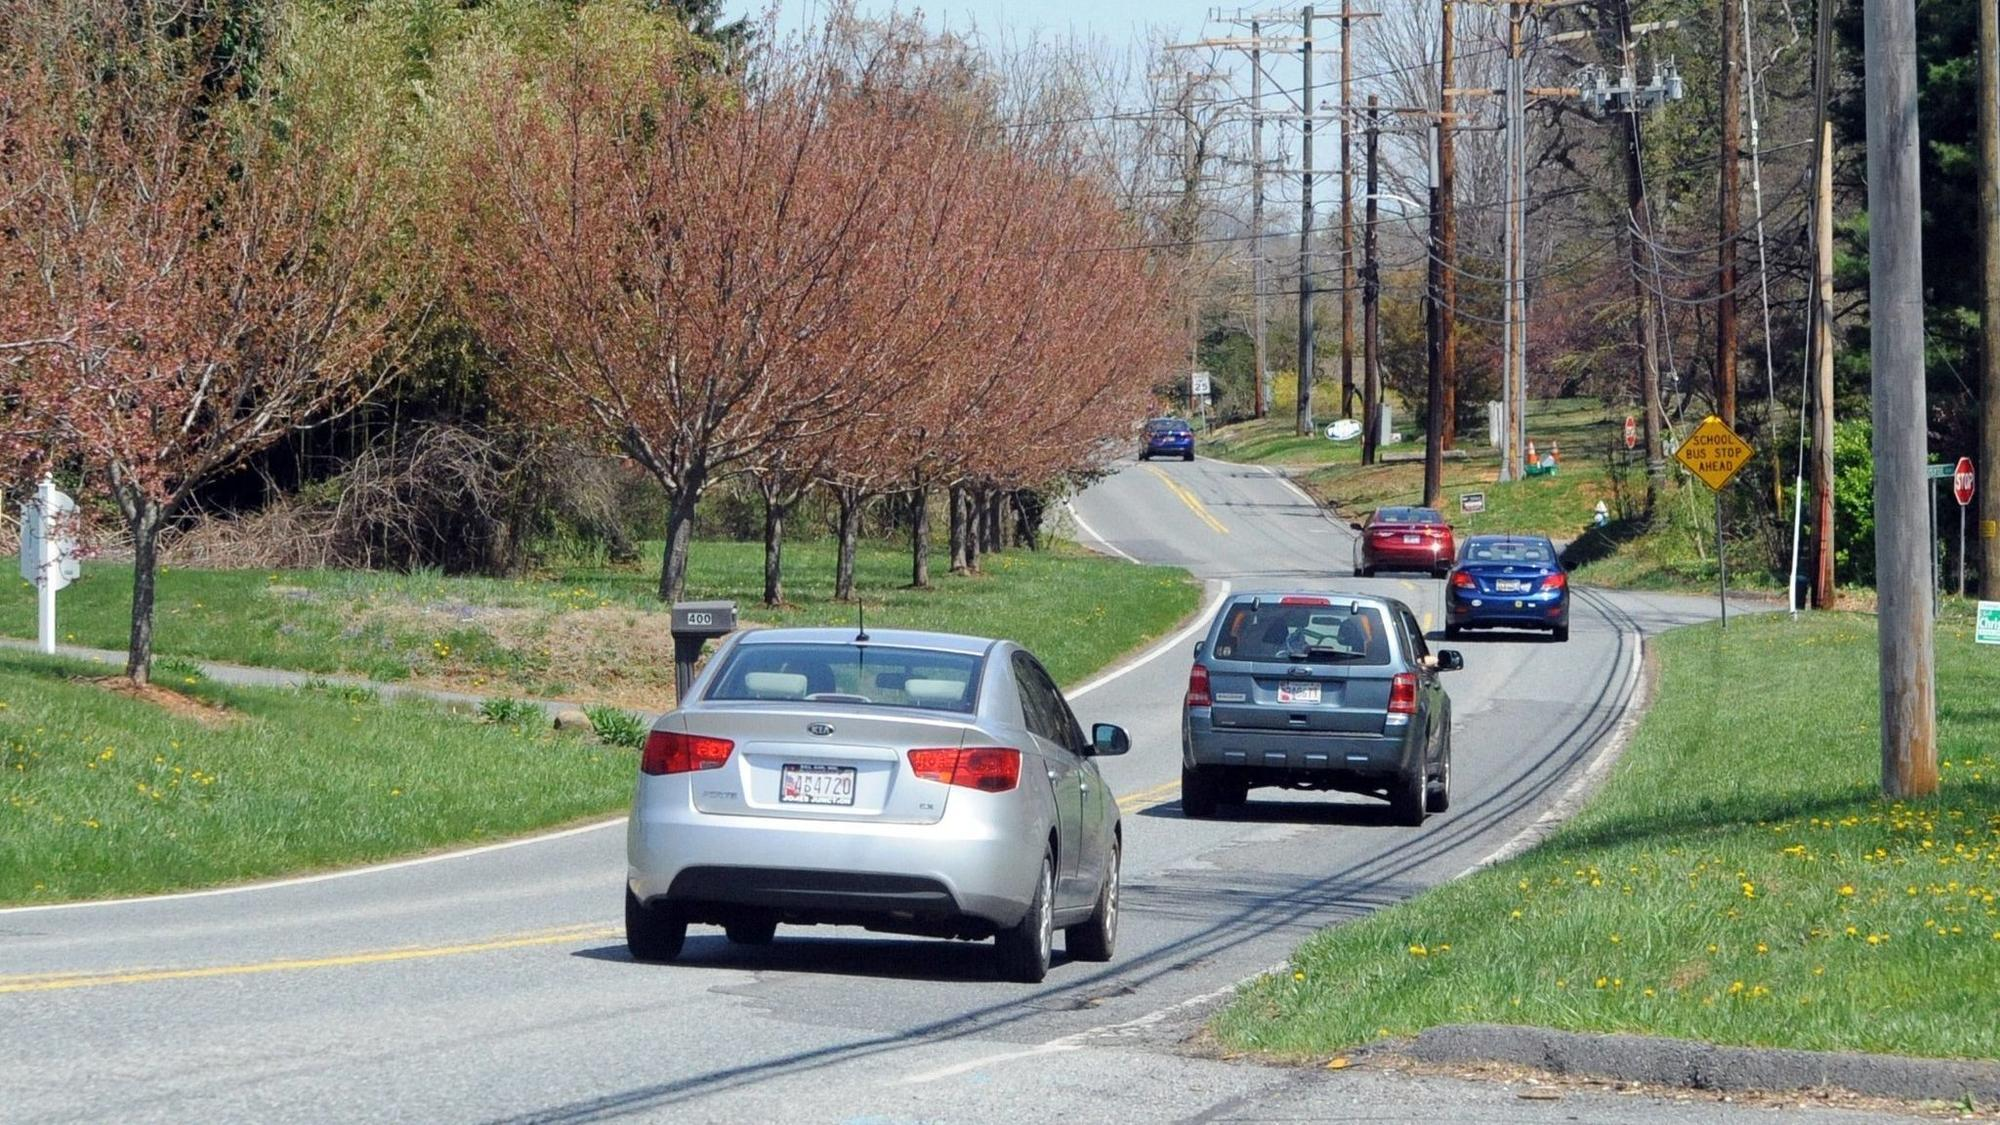 Closure Of Moores Mill Road In Bel Air For Work Delayed Until Car Lights Delay Spring The Aegis